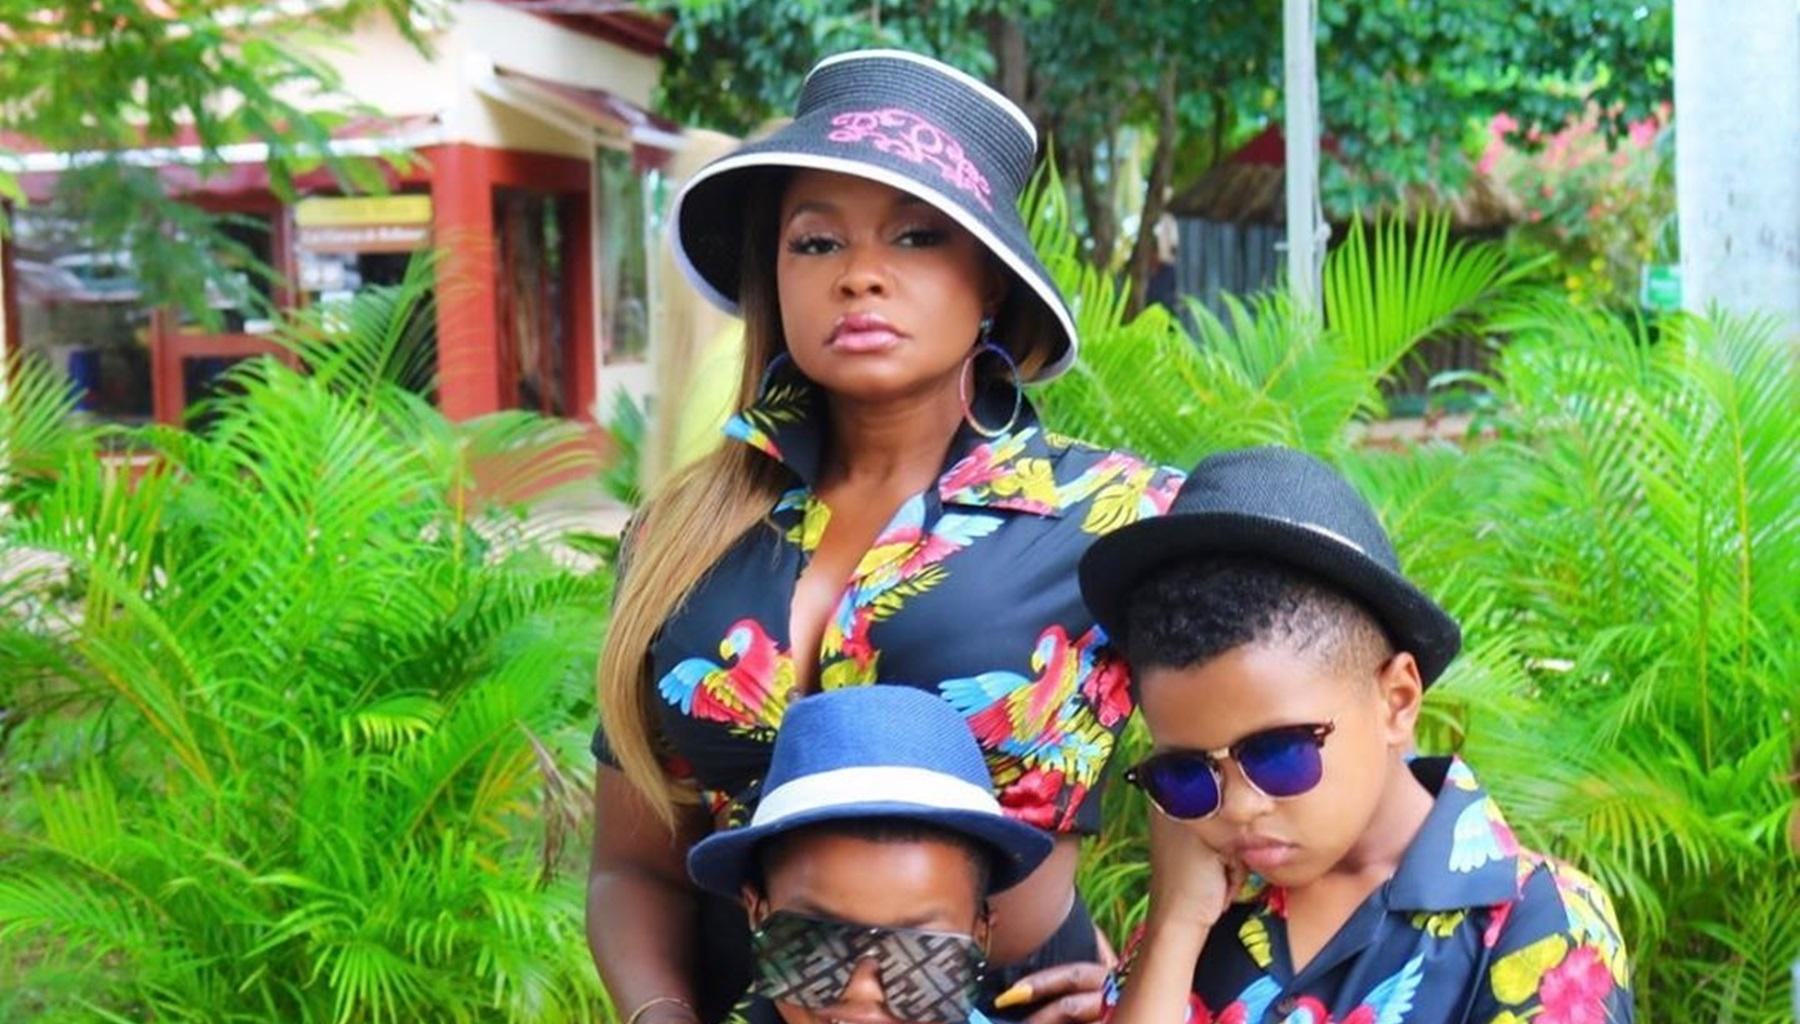 Phaedra Parks' Video Featuring Her Son Will Make Your Day - See It Here